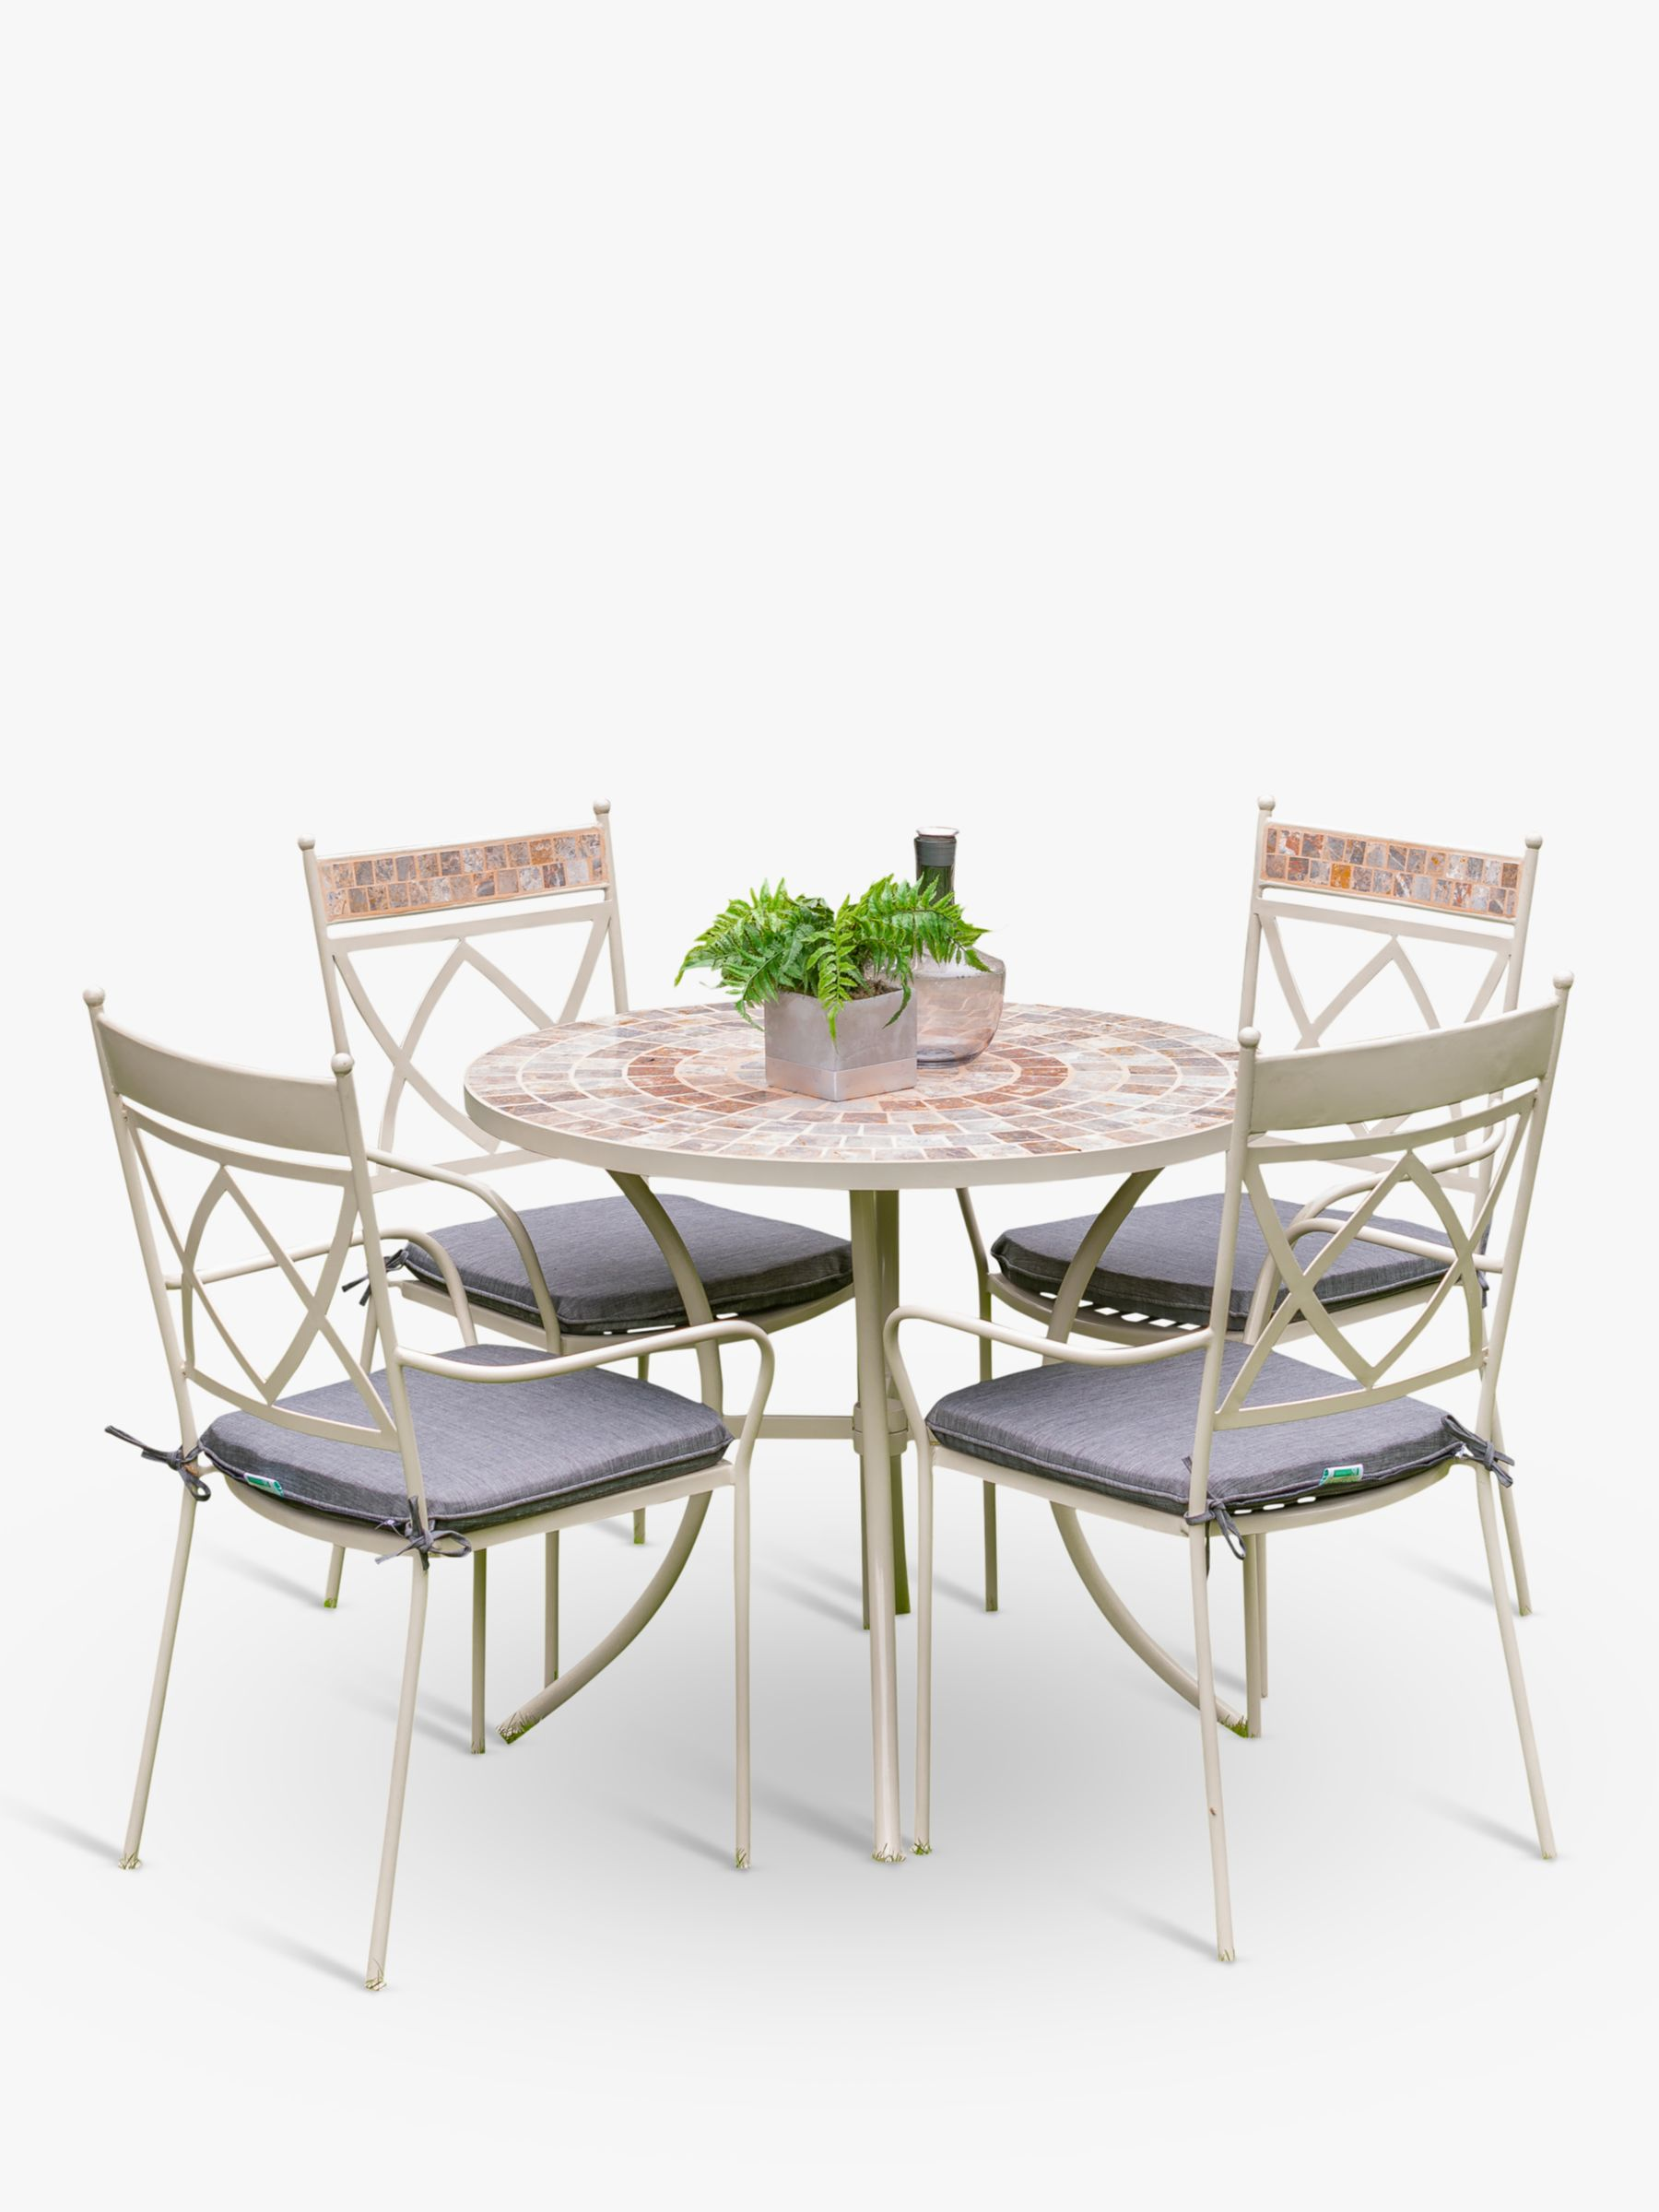 LG Outdoor LG Outdoor Morocco 4-Seat Round Garden Dining Table & Chairs Set